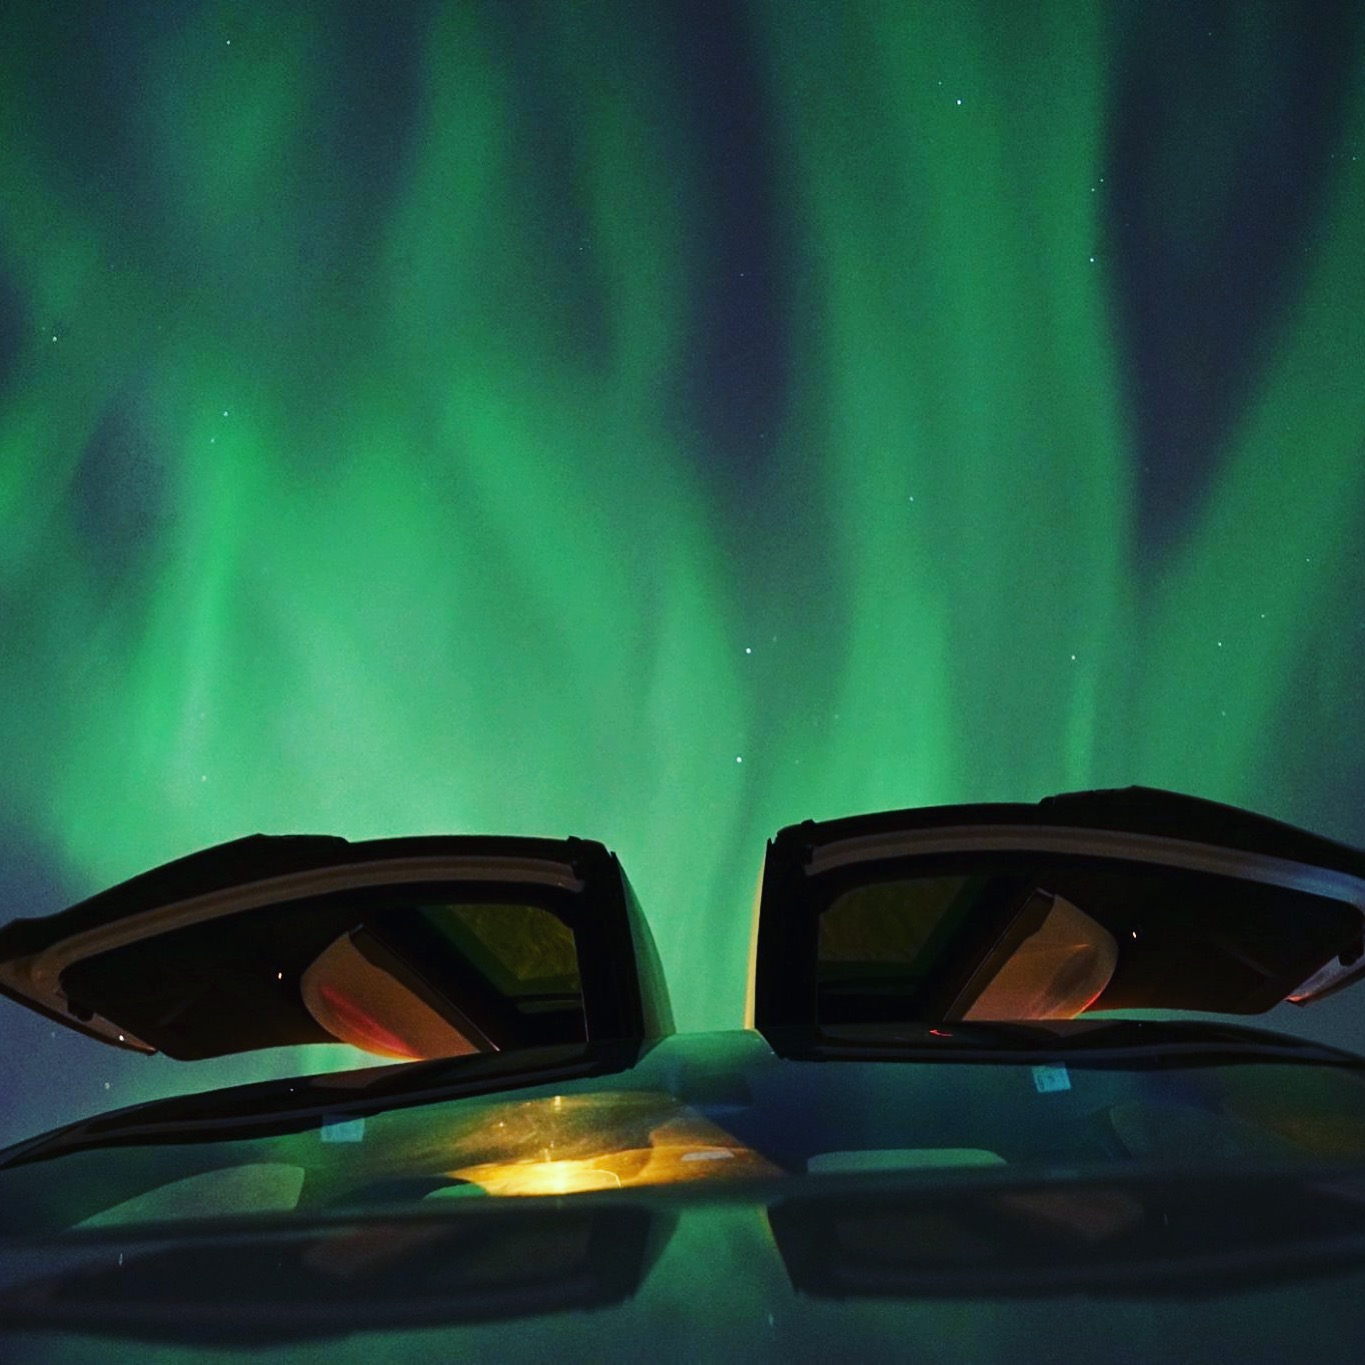 Hunt for the magical Northern lights